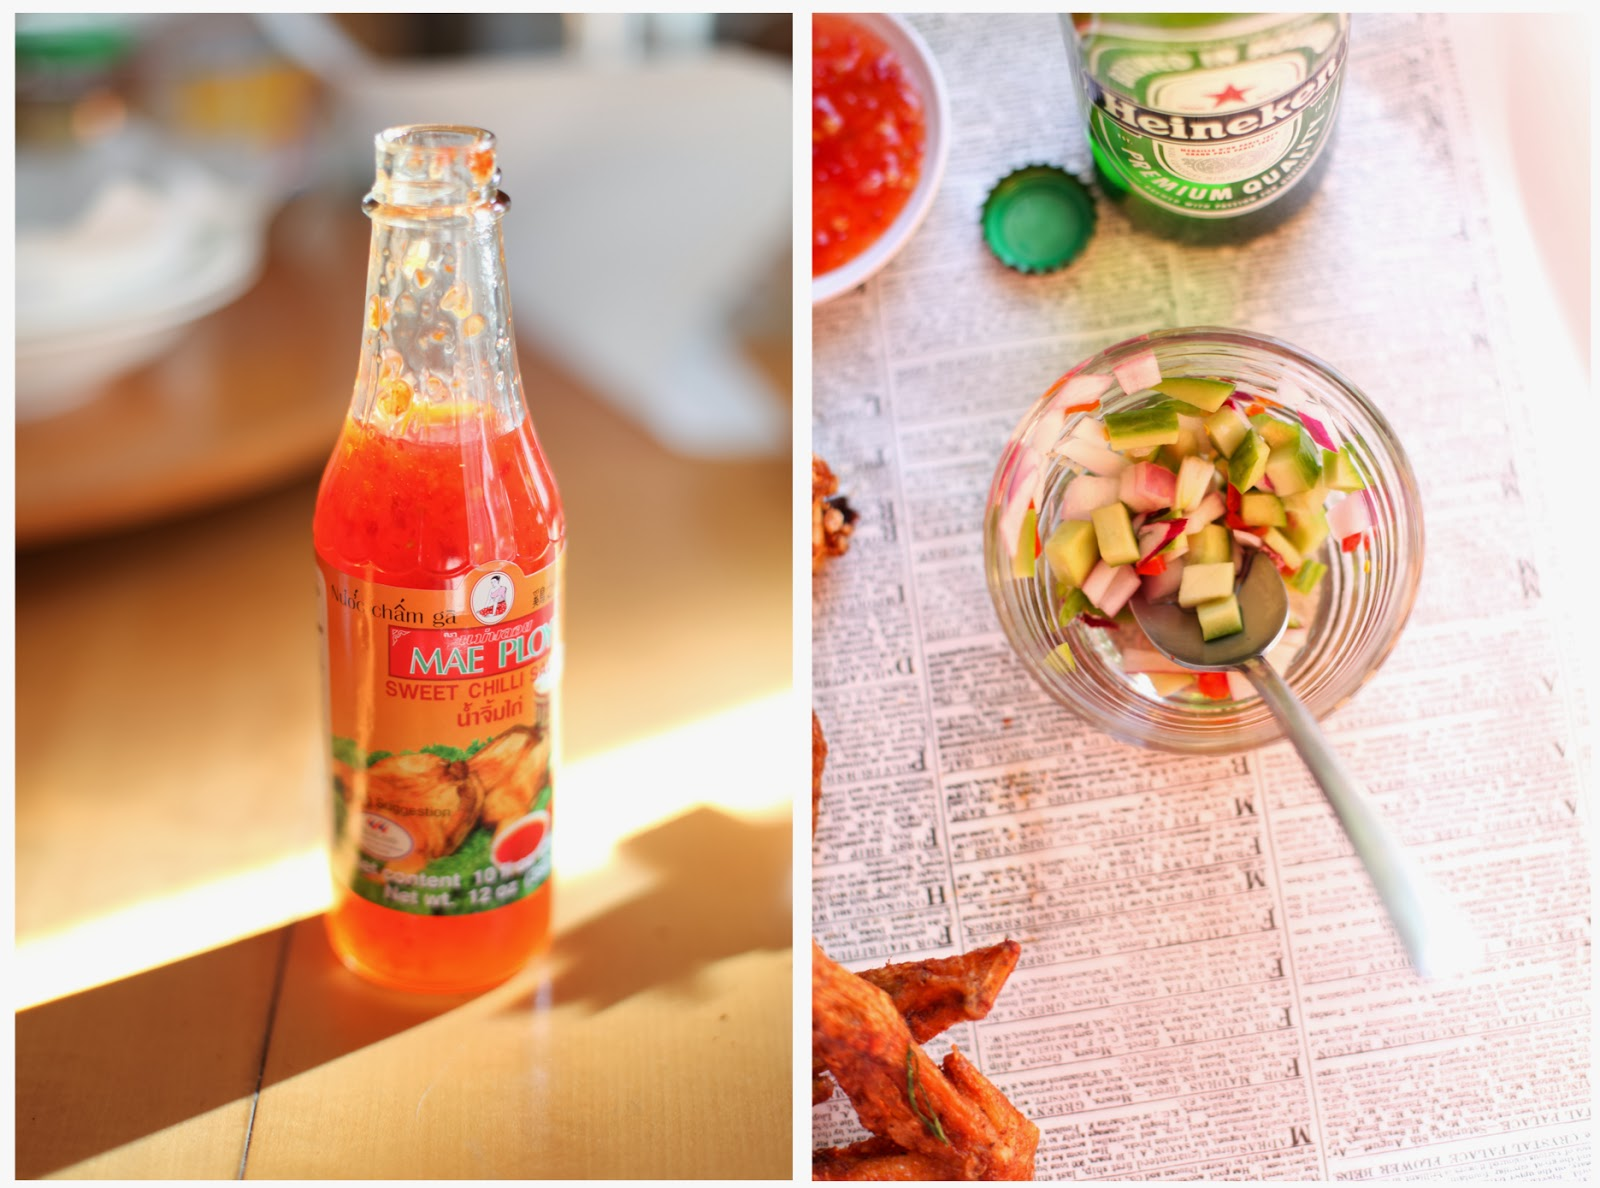 Mae Ploy Sweet Chili Dipping Sauce and Homemade PIckled Thai Cucumber Relish | via Chandara Creative